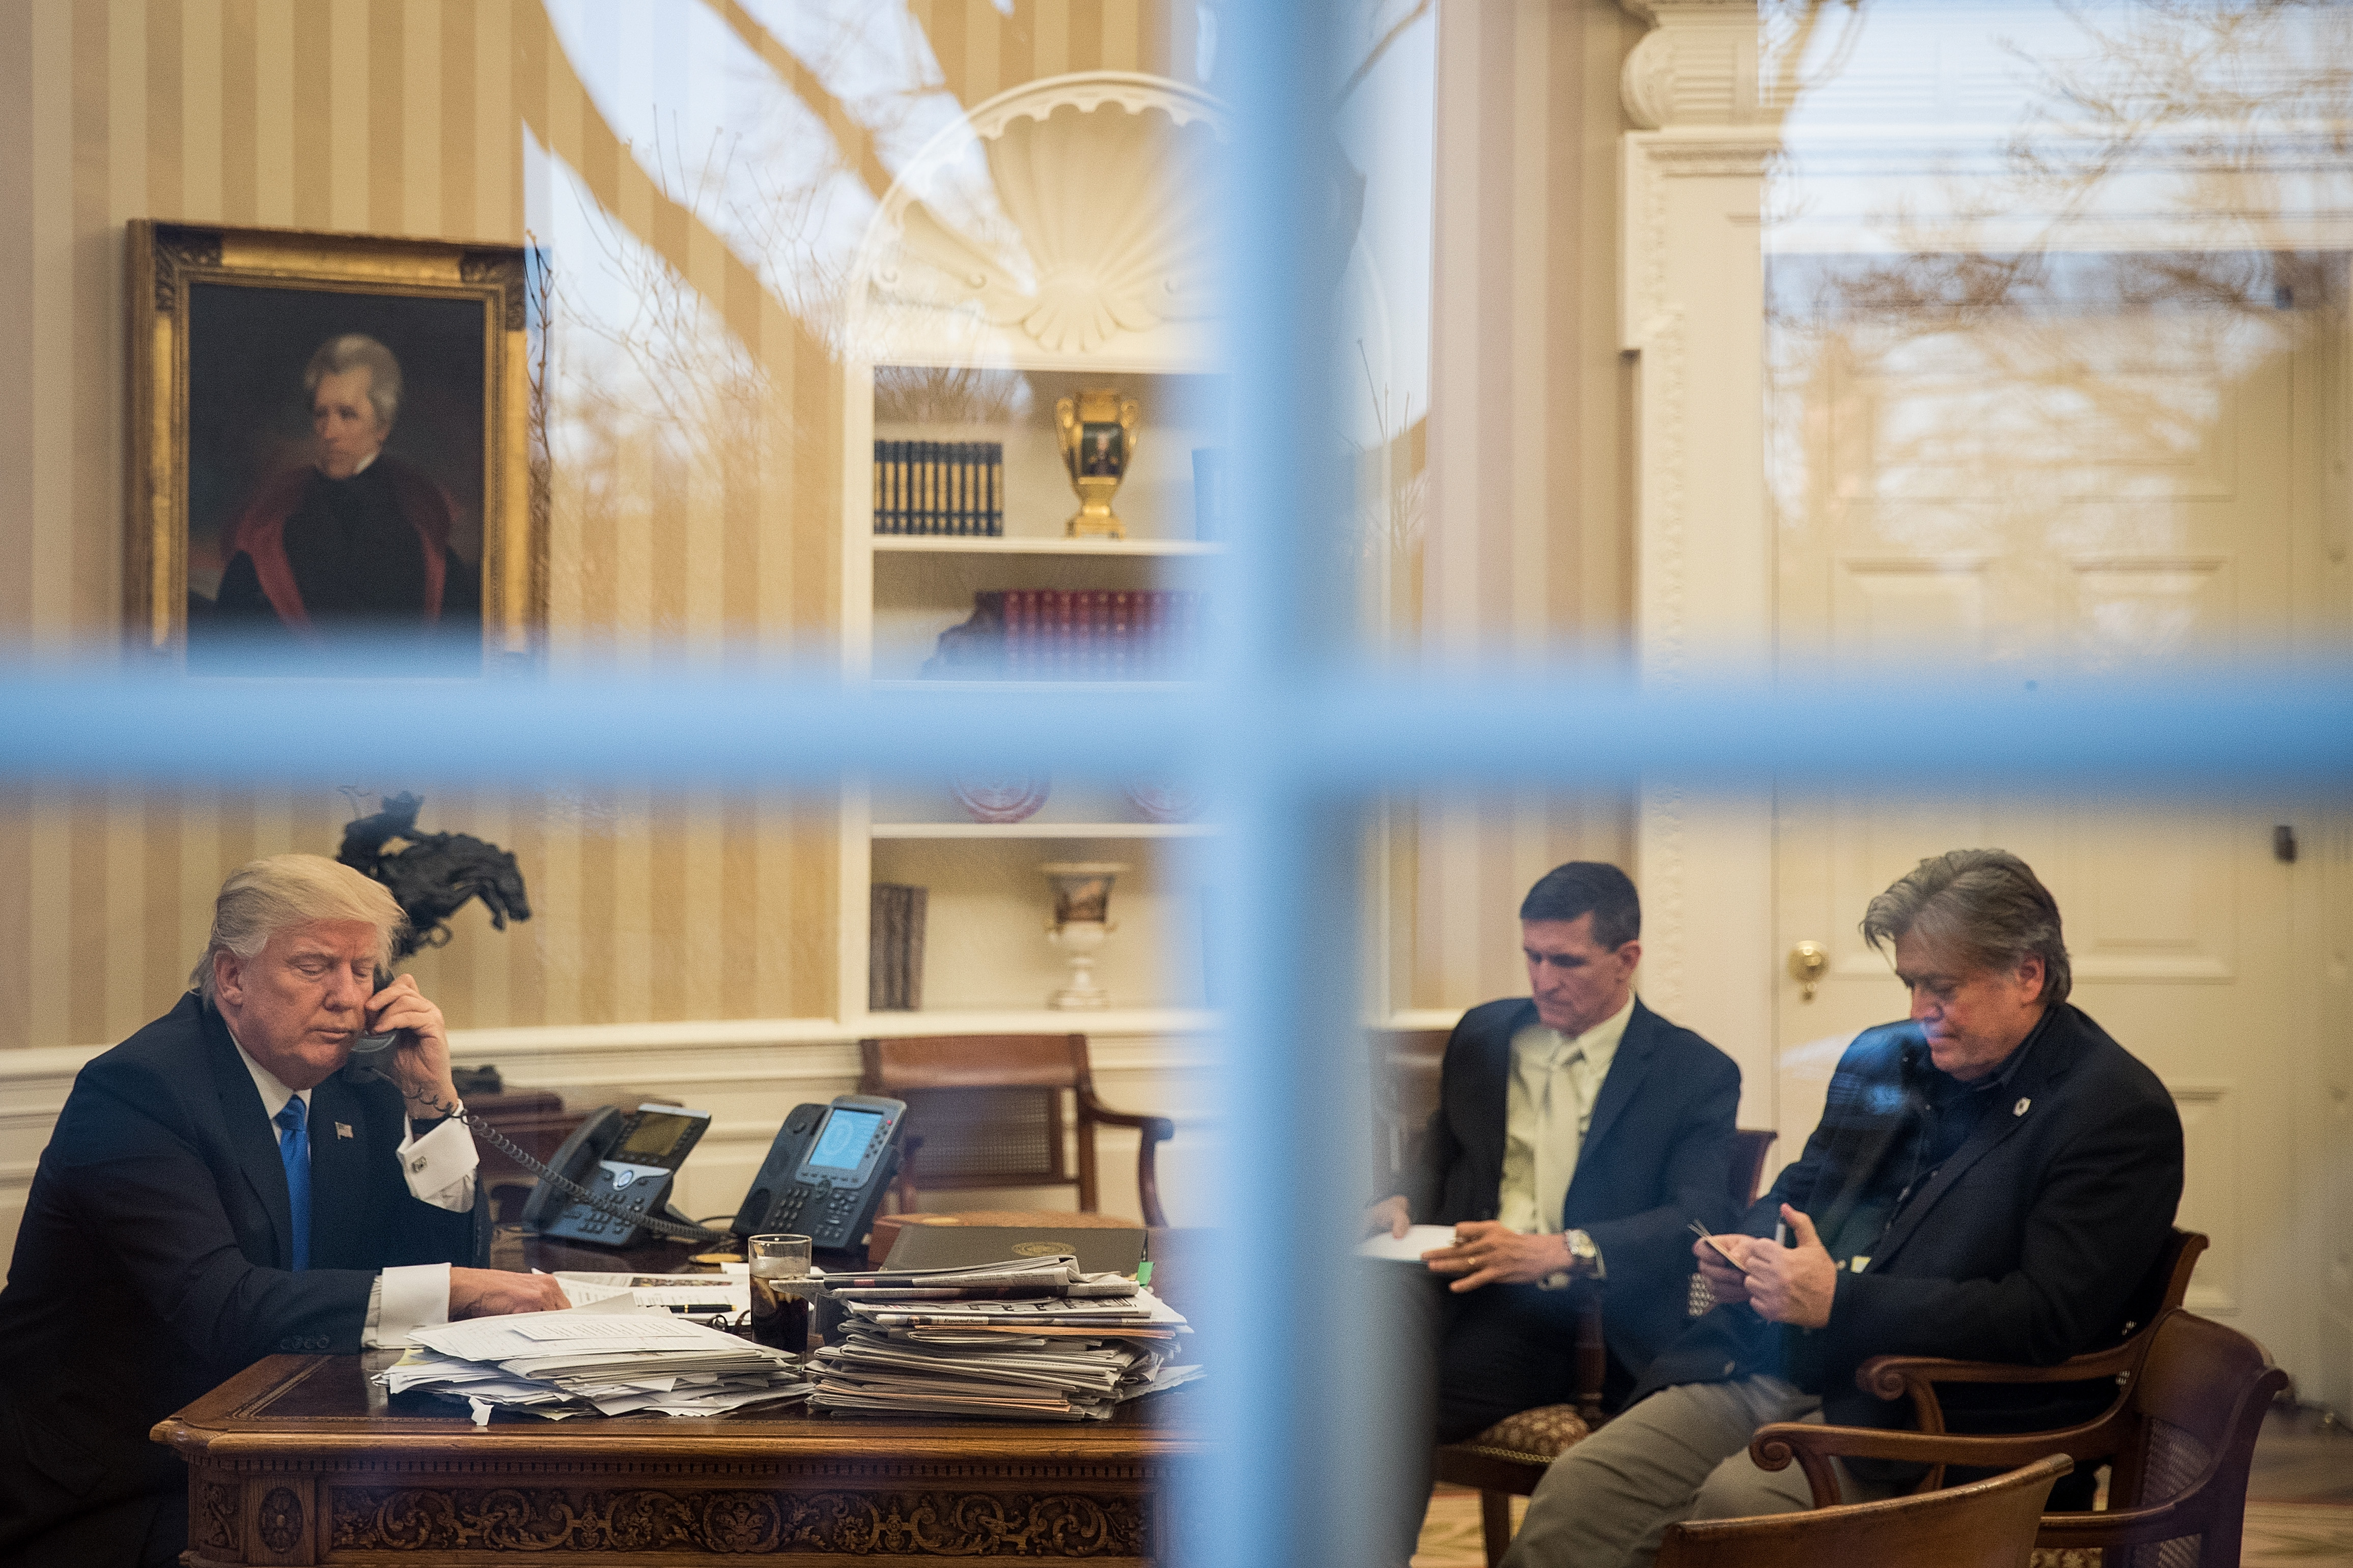 WASHINGTON, DC - JANUARY 28: President Donald Trump speaks on the phone with Australian Prime Minister Malcolm Turnbull in the Oval Office of the White House, January 28, 2017 in Washington, DC. Also pictured at right, National Security Advisor Michael Flynn and White House Chief Strategist Steve Bannon. On Saturday, President Trump is making several phone calls with world leaders from Japan, Germany, Russia, France and Australia. (Photo by Drew Angerer/Getty Images)